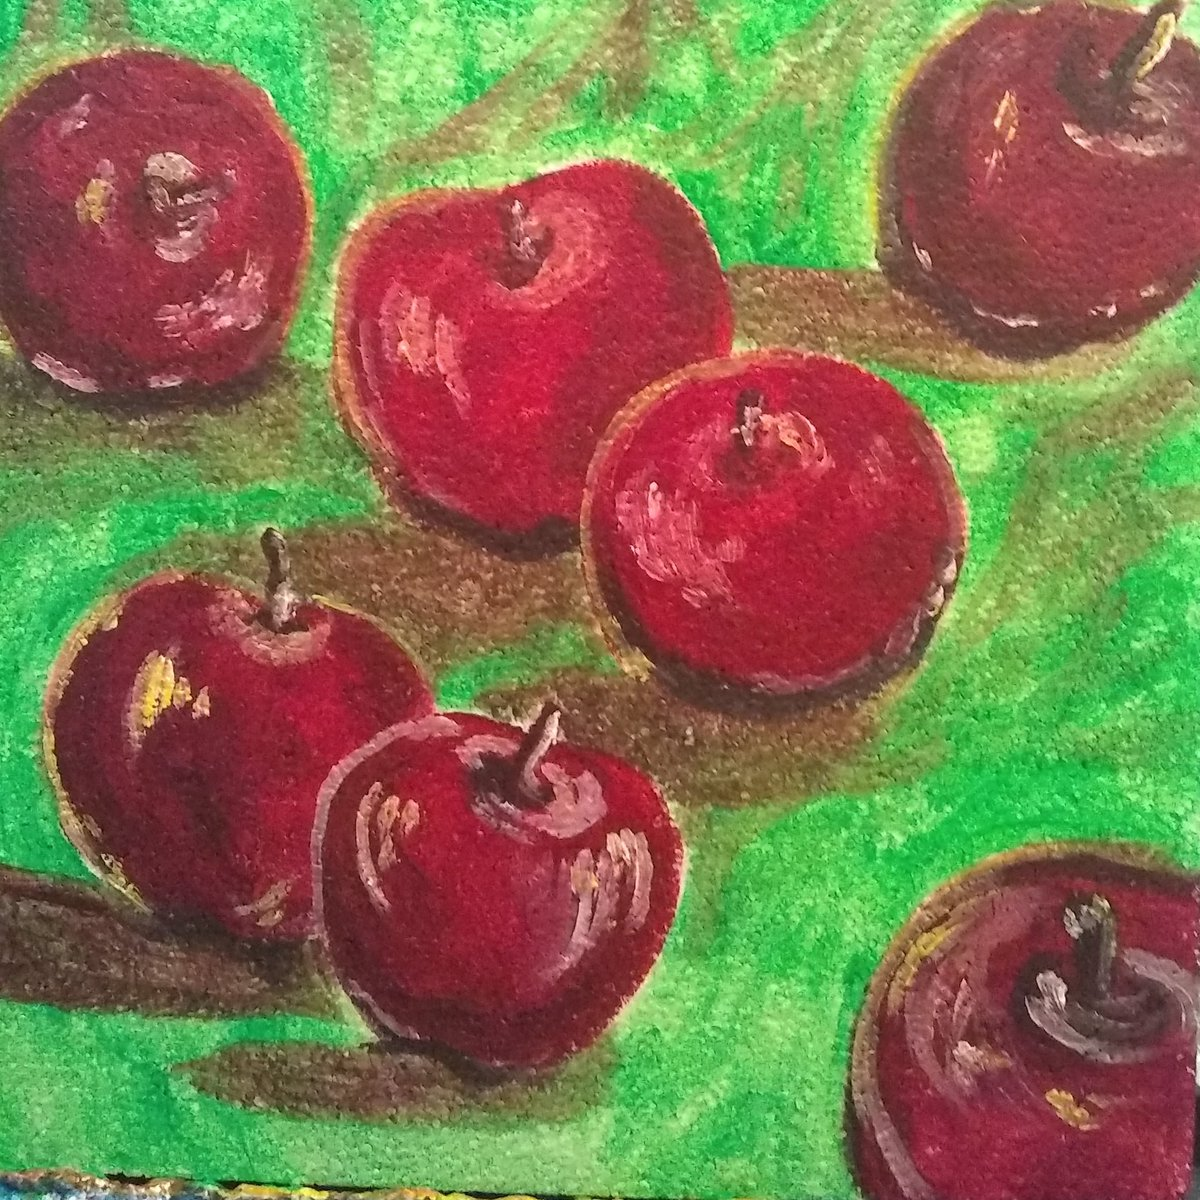 #paintings #acrylicpaintings #apples #applepaintings #fruitart #fruitpaintings Created this acrylic painting of some apples for one of my YouTube demo videos. Love how this one turned out. pic.twitter.com/CYN5U9fx4o